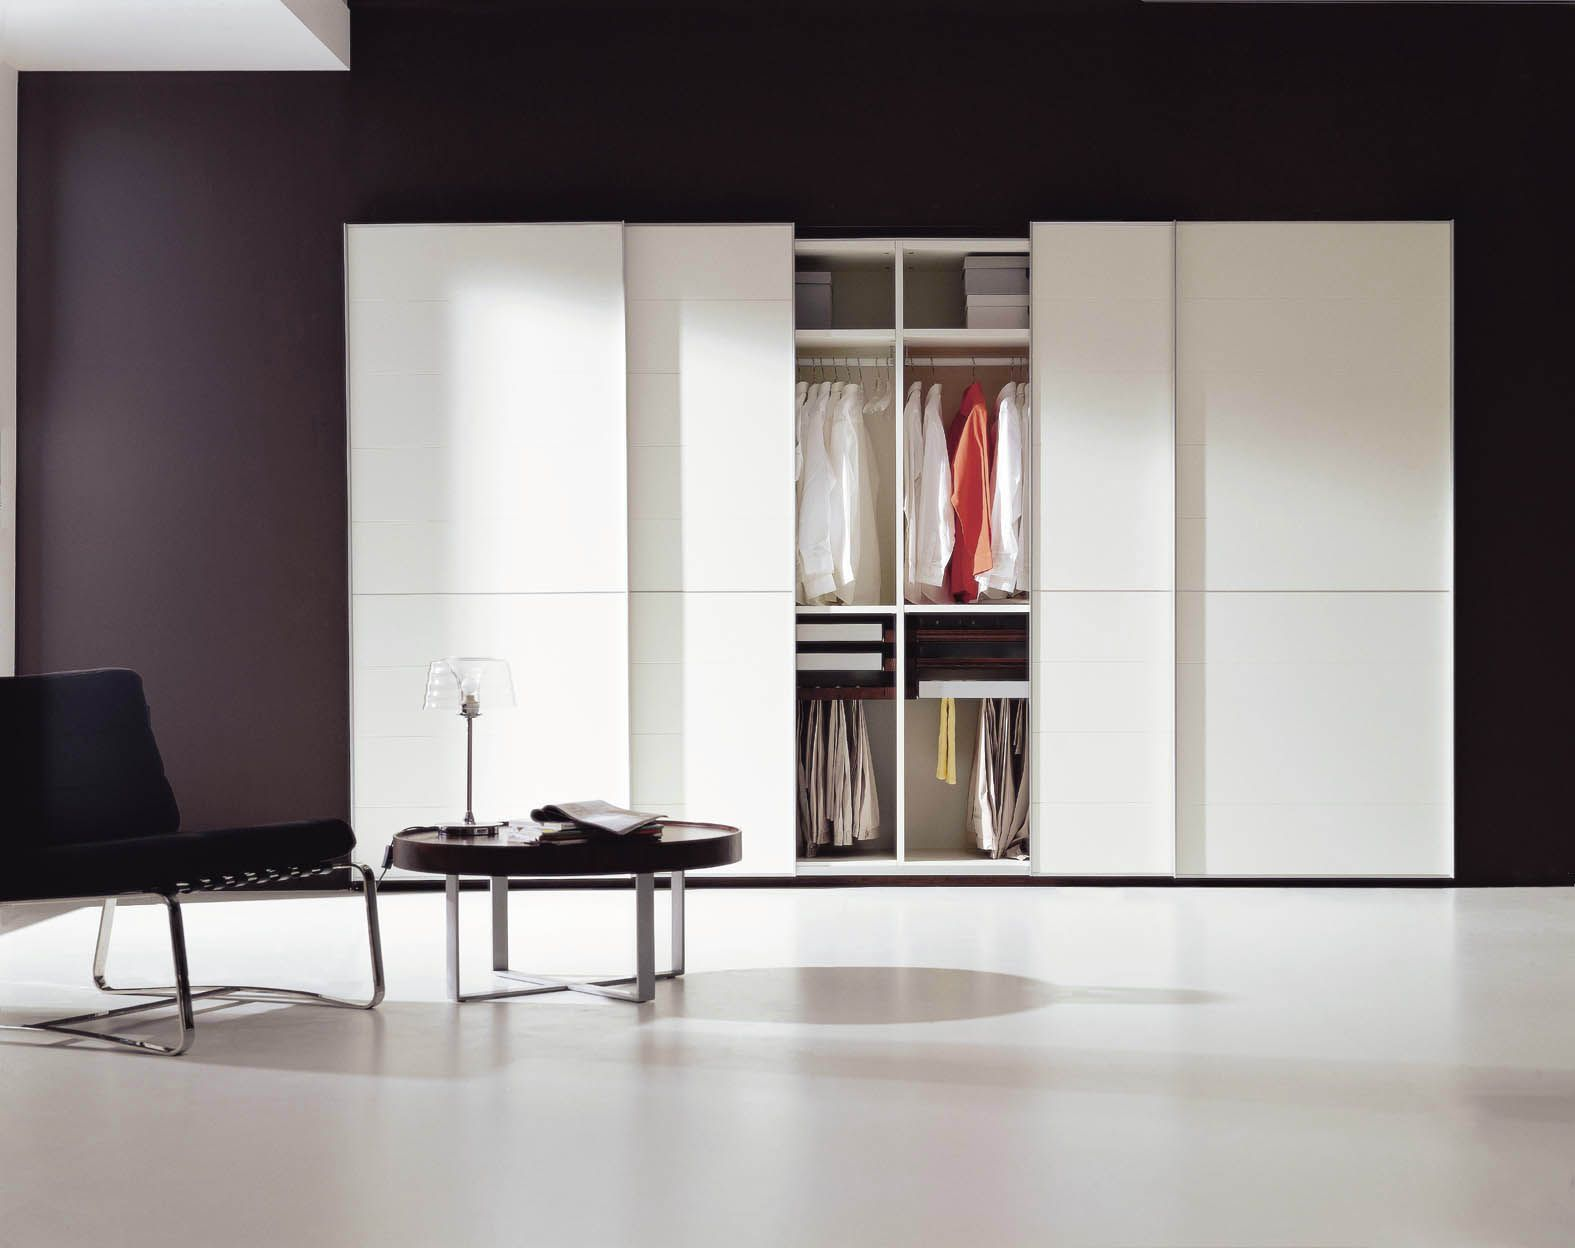 bedroom cabinets designs. Cabinet Room Design Bedroom Wardrobe Designs Cabinets T